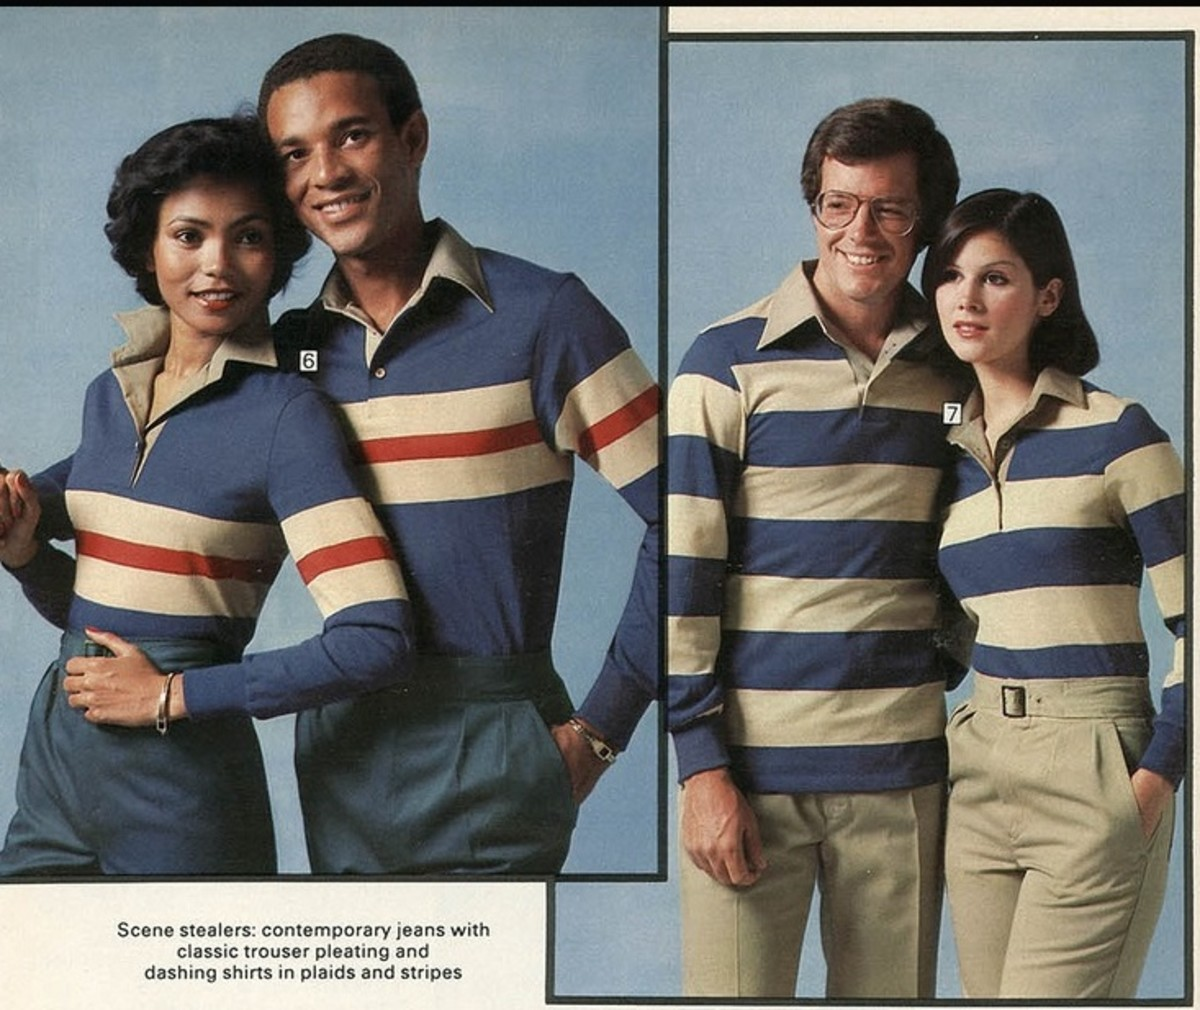 His and hers matching polos and pants, forgotten 70s fashion trends